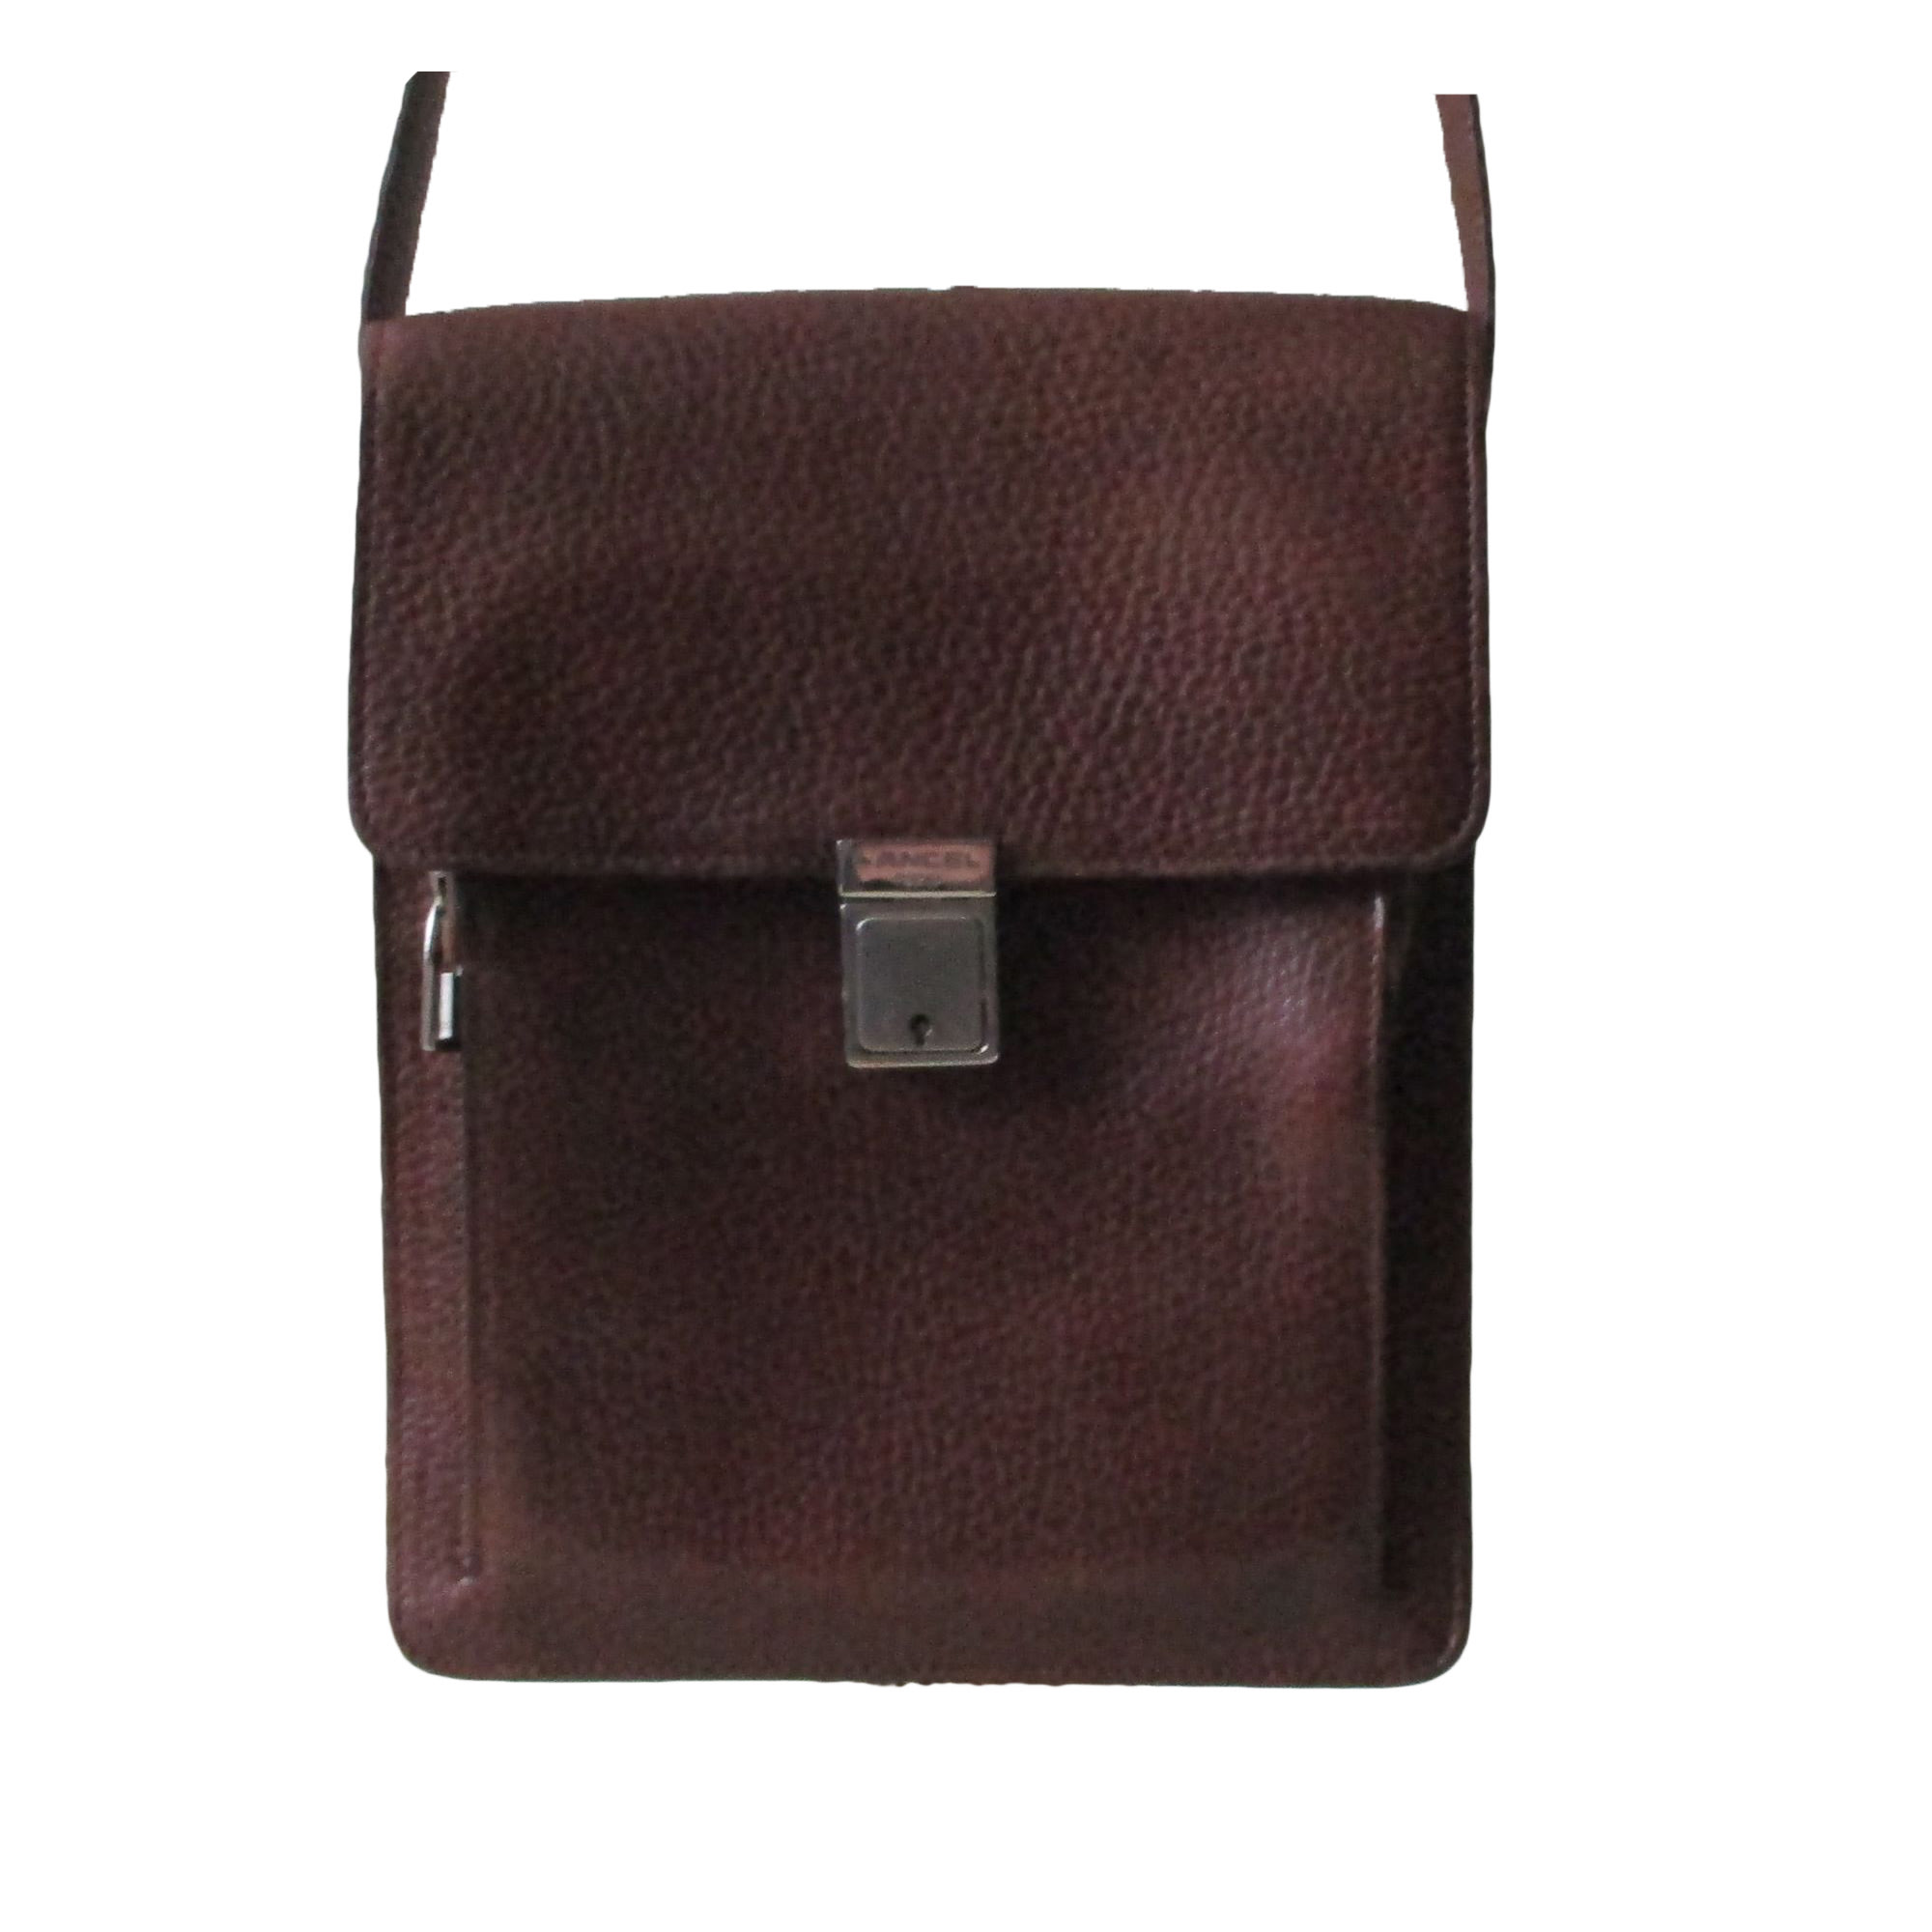 Sacoche LANCEL Marron